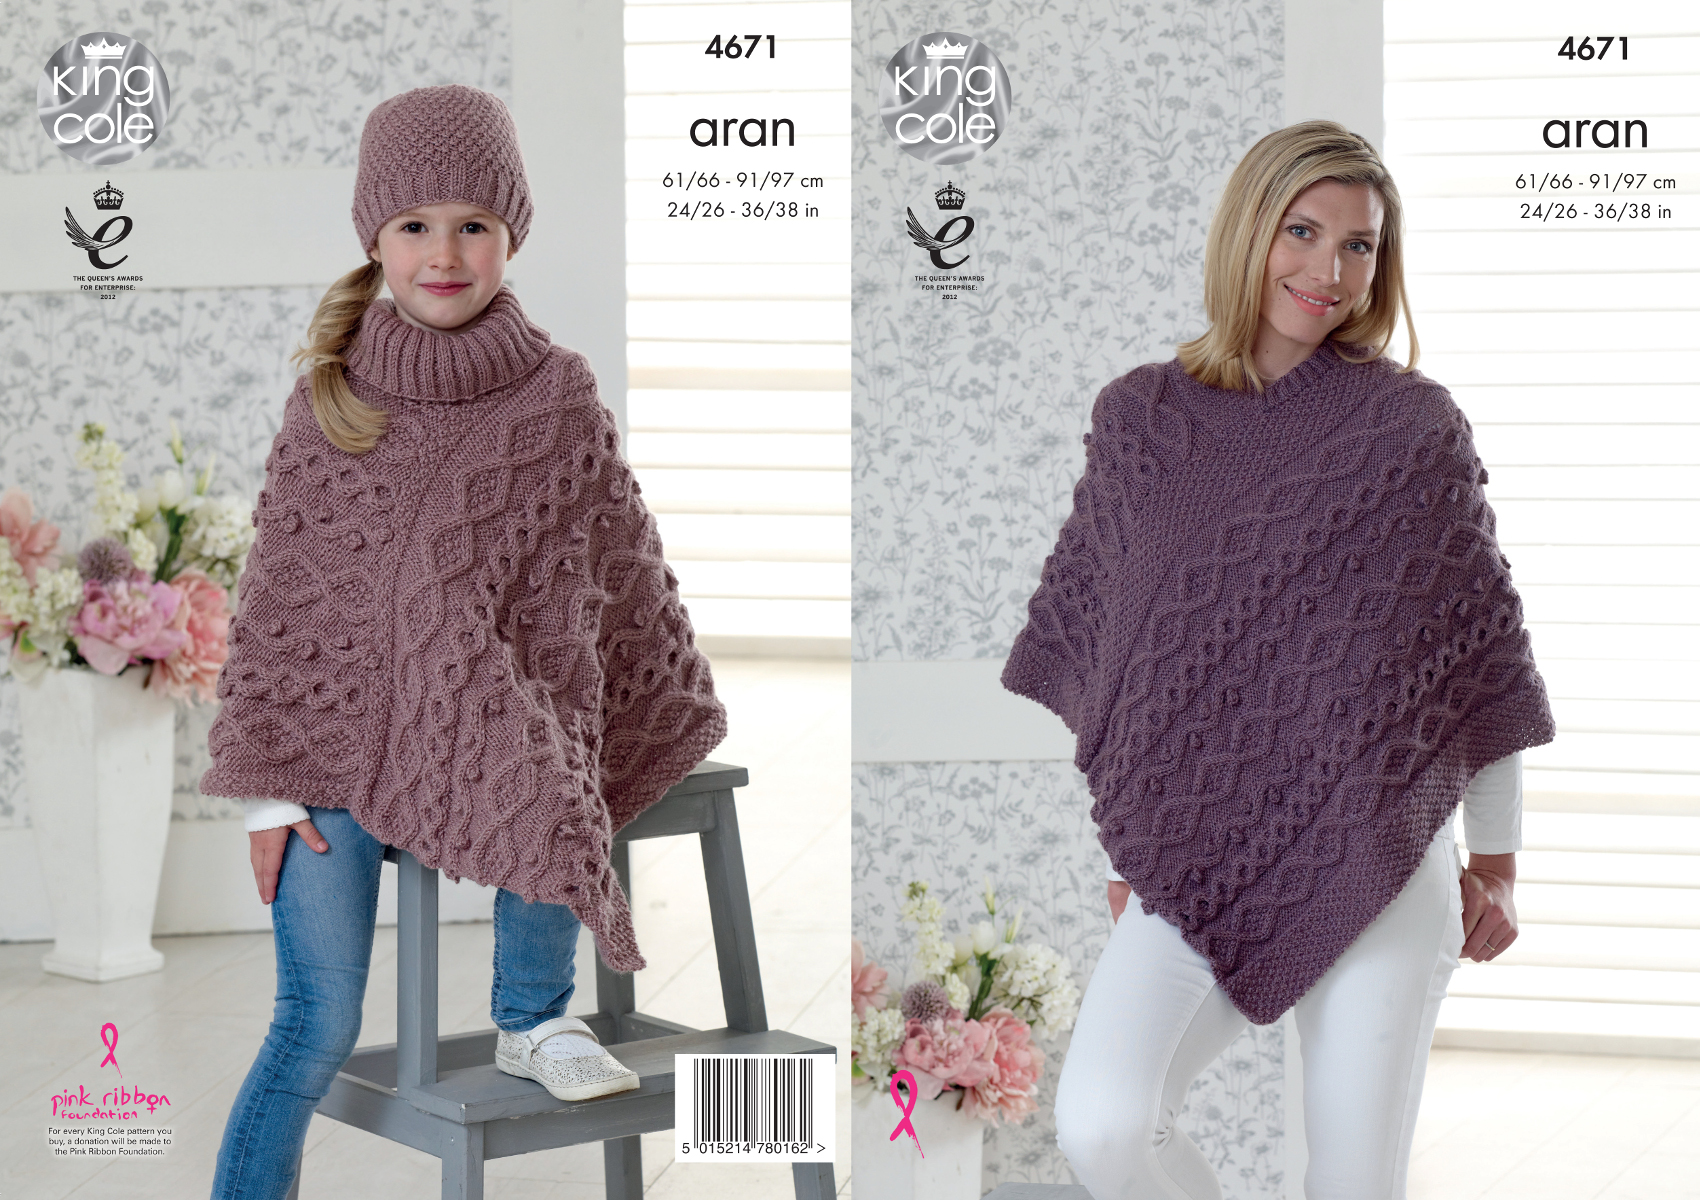 King Cole Ladies & Girls Aran Knitting Pattern V or Polo Neck Poncho &...